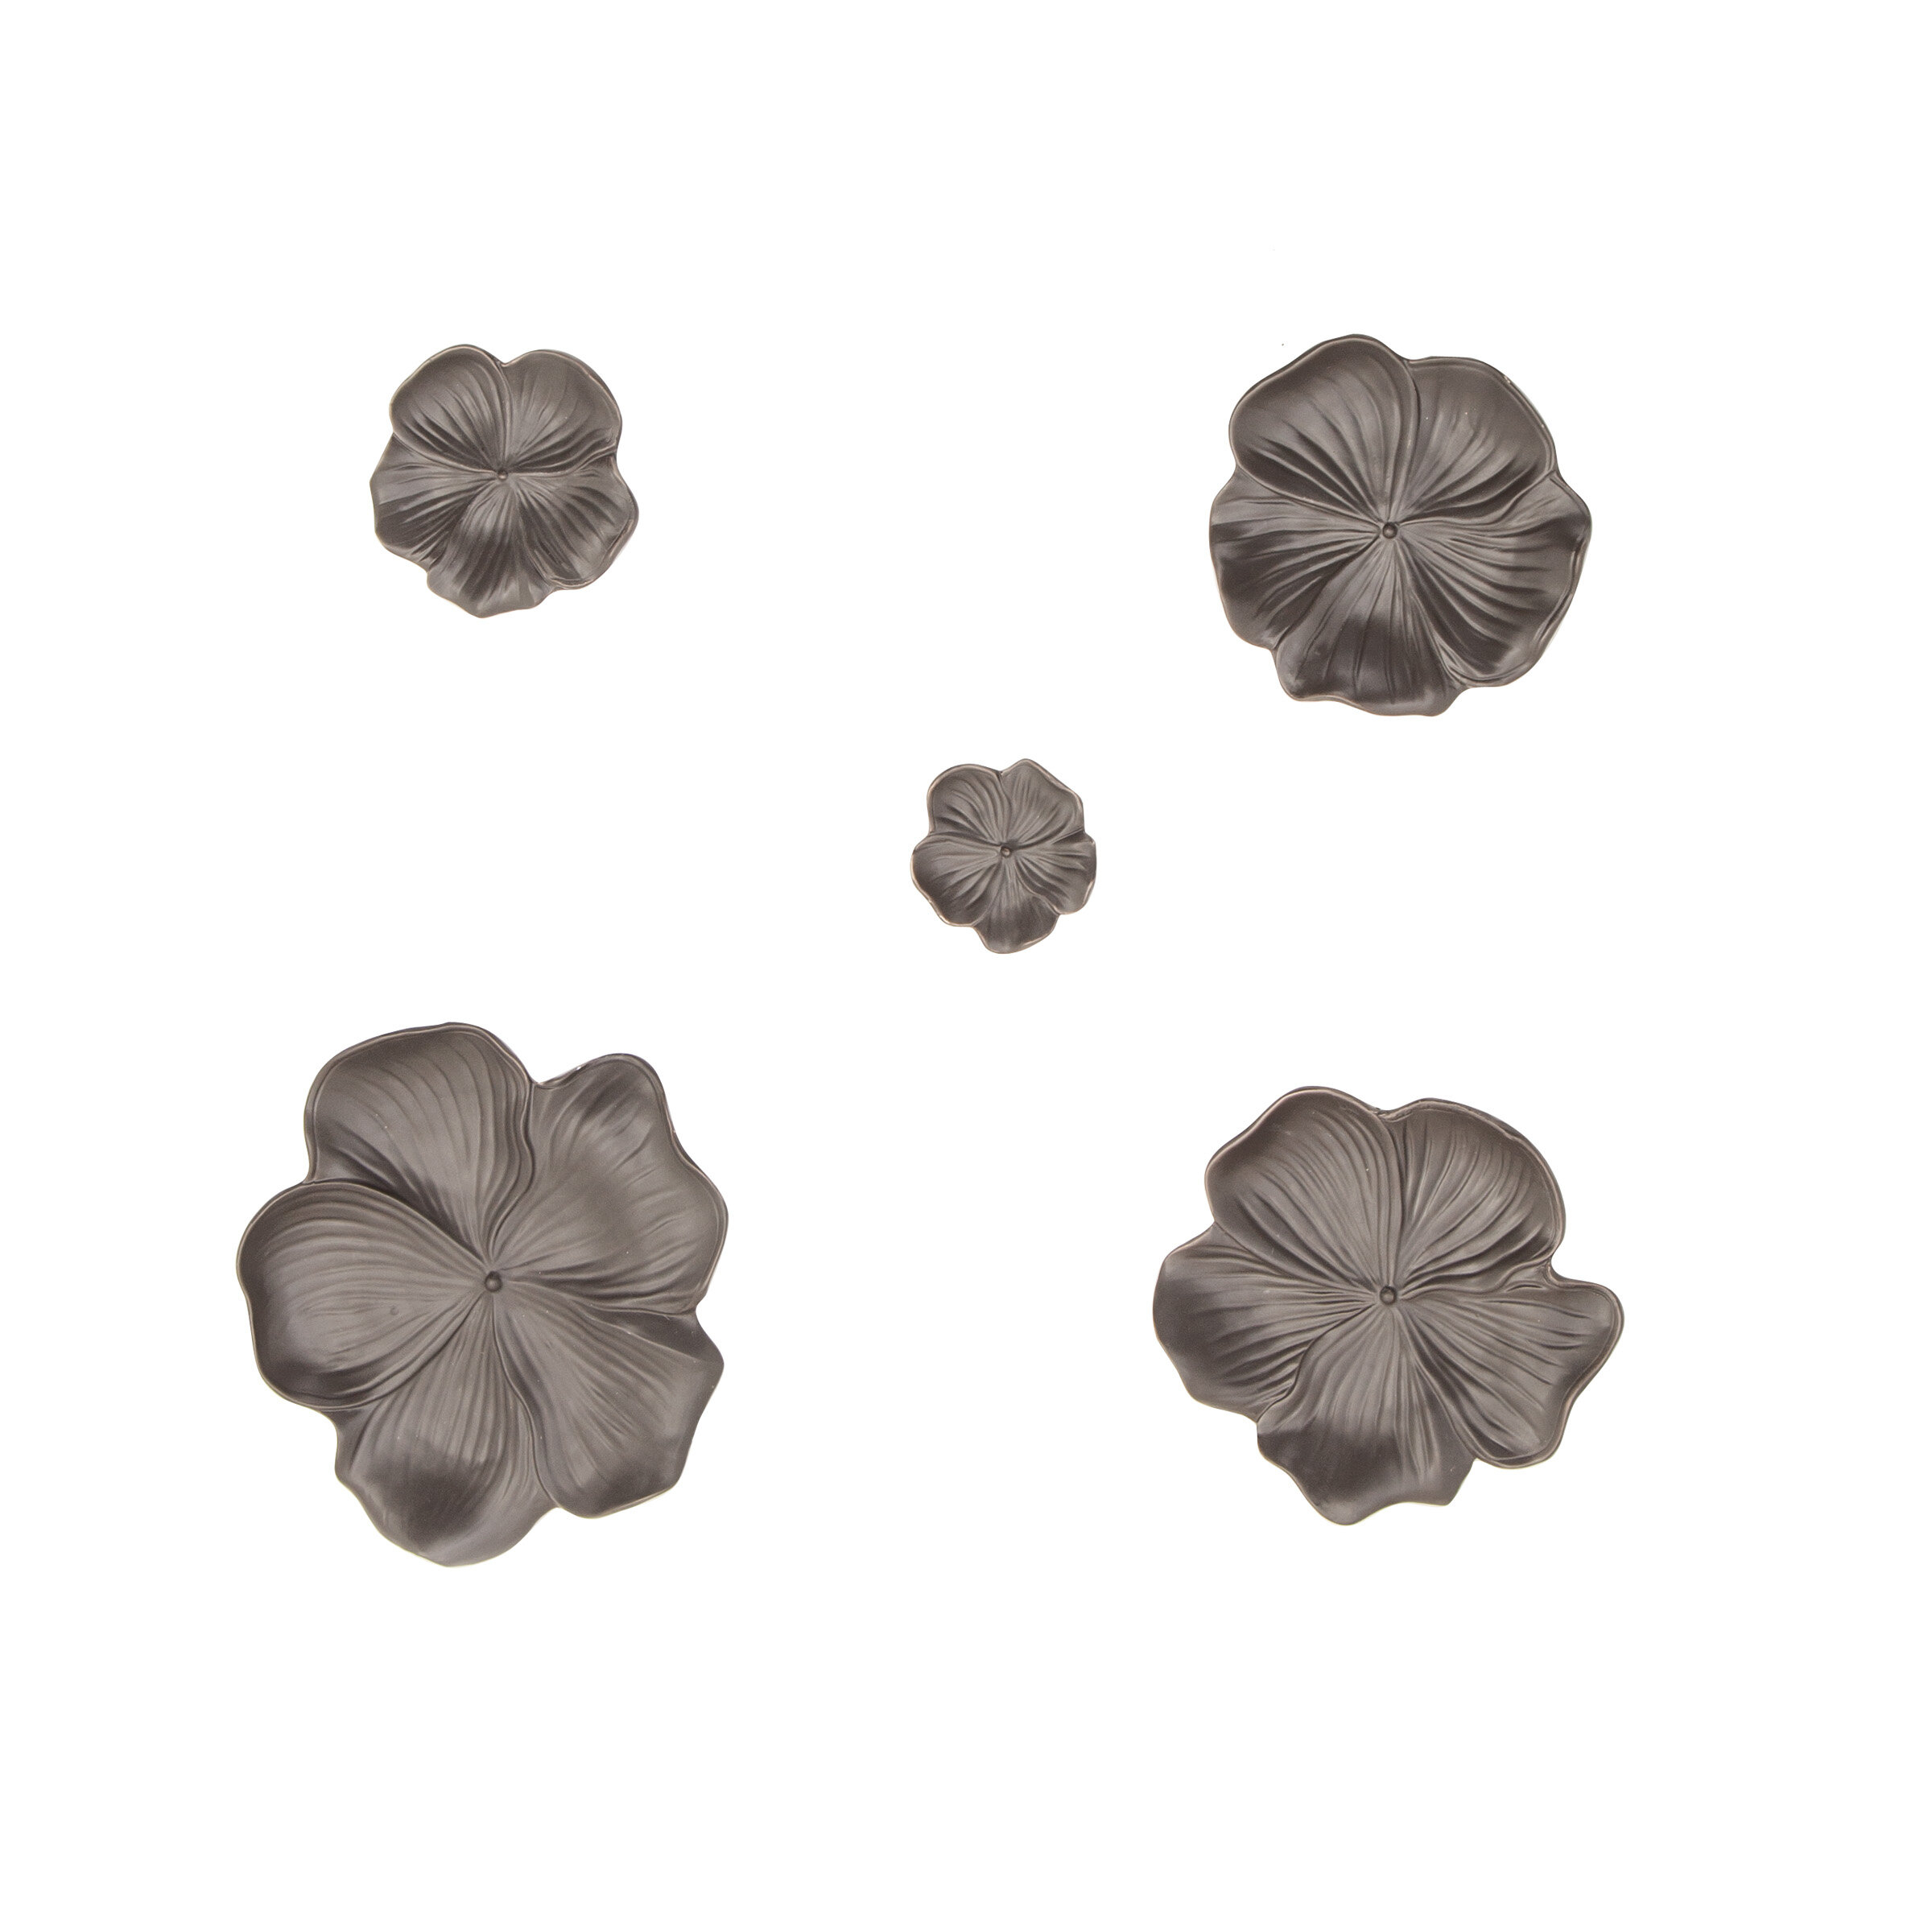 Bellefonte 5 Piece Ceramic Floral Wall Decor Set throughout Mariposa 9 Piece Wall Decor (Image 6 of 30)